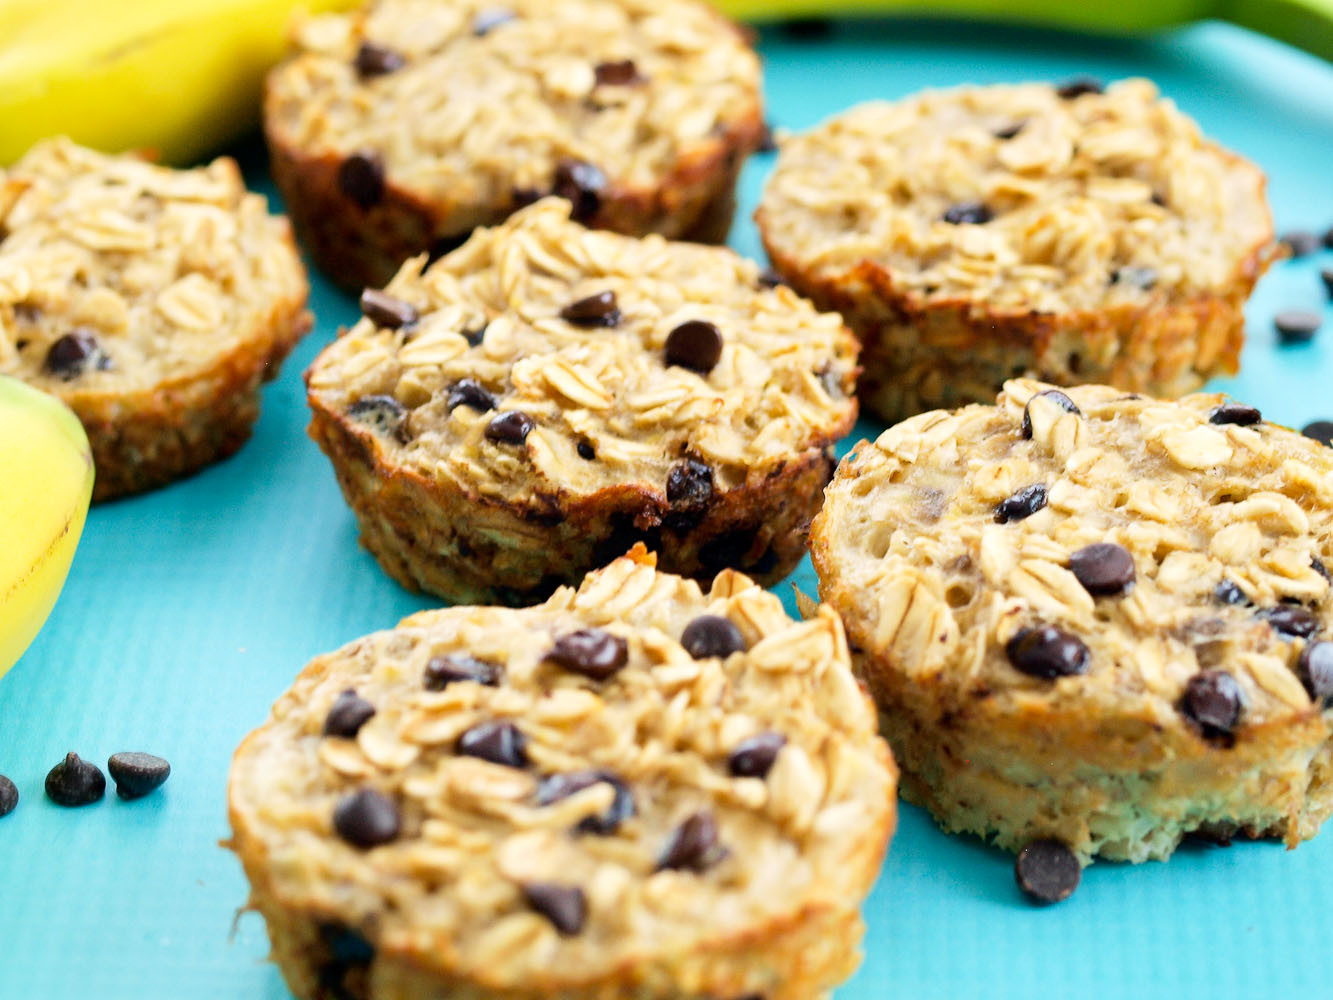 Healthy Oatmeal Chocolate Chip Muffins  Banana Chocolate Chip Baked Oatmeal Muffins Happy